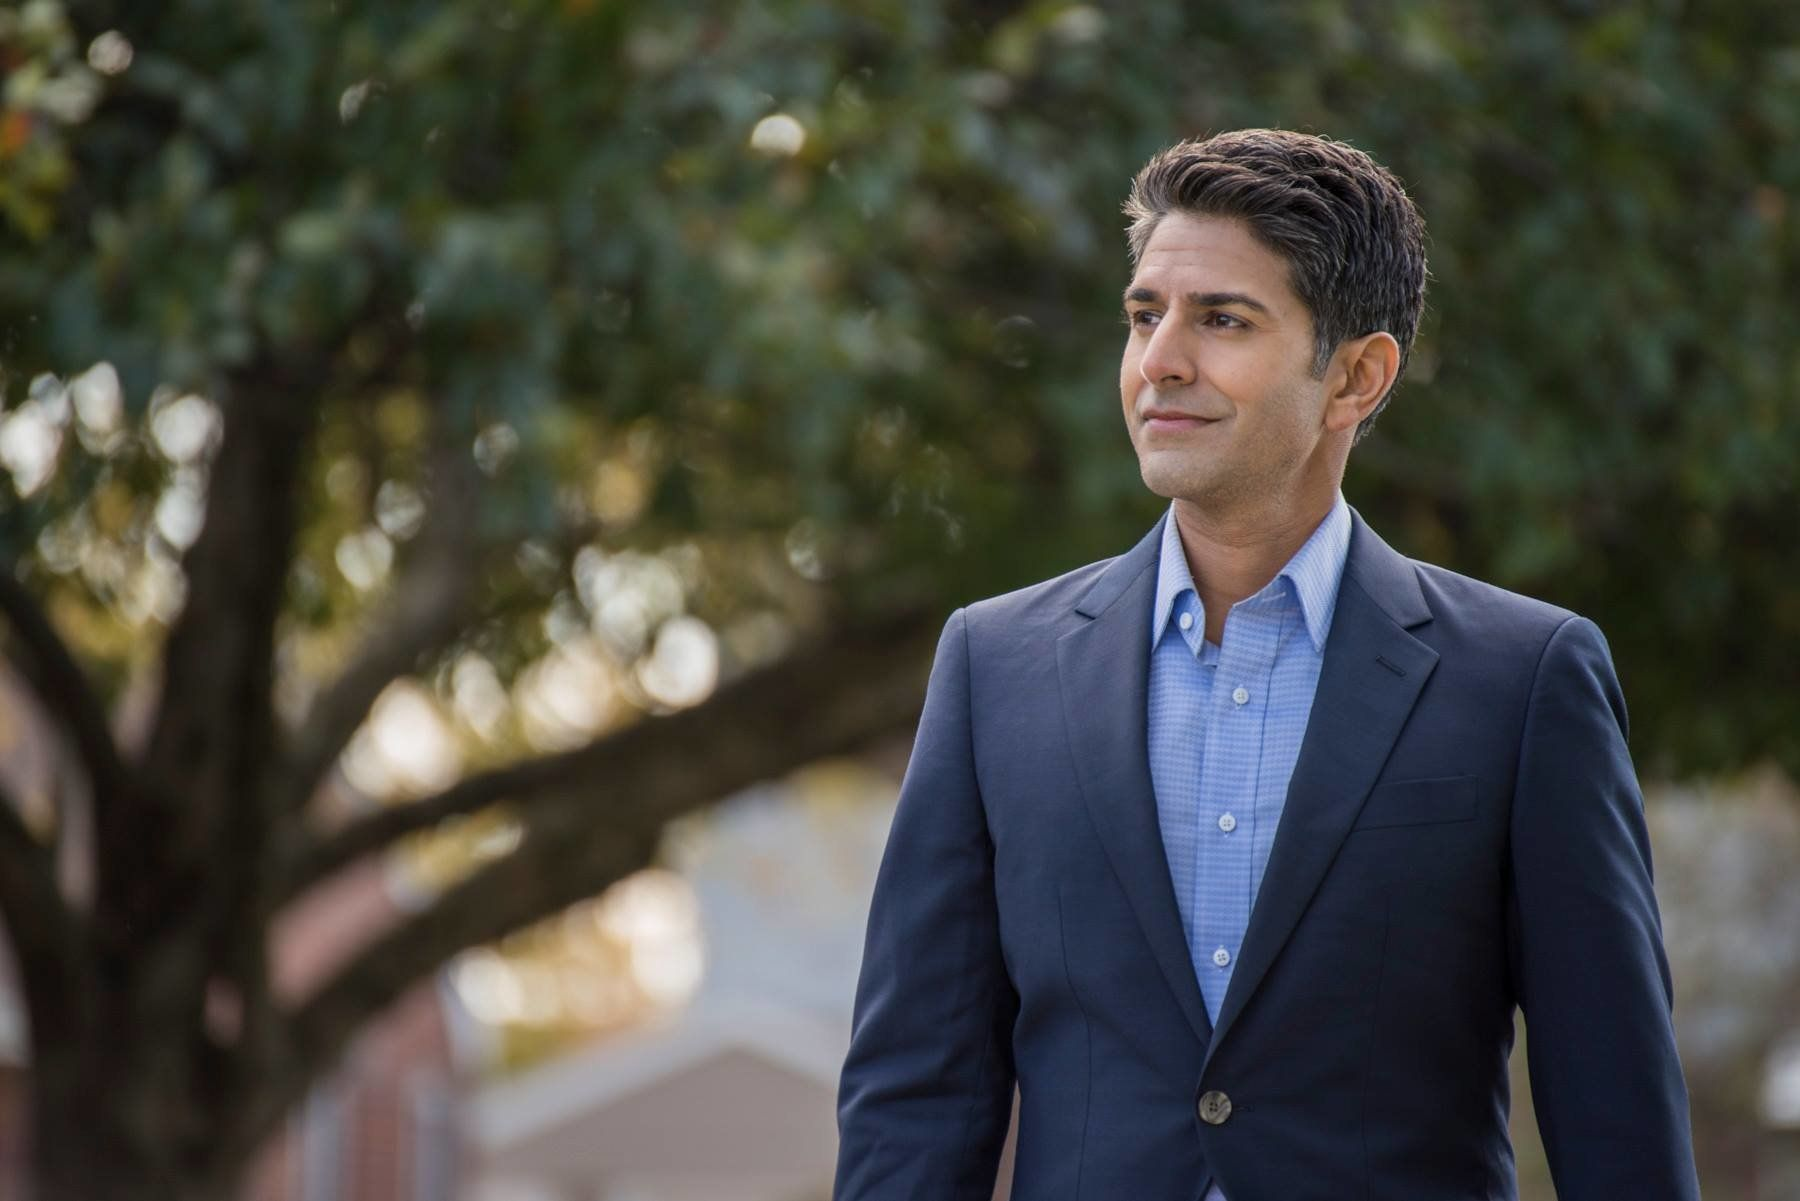 Democrat Suneel Gupta is running in a suburban Detroit district where ties to the manufacturing-heavy automotive industry run deep